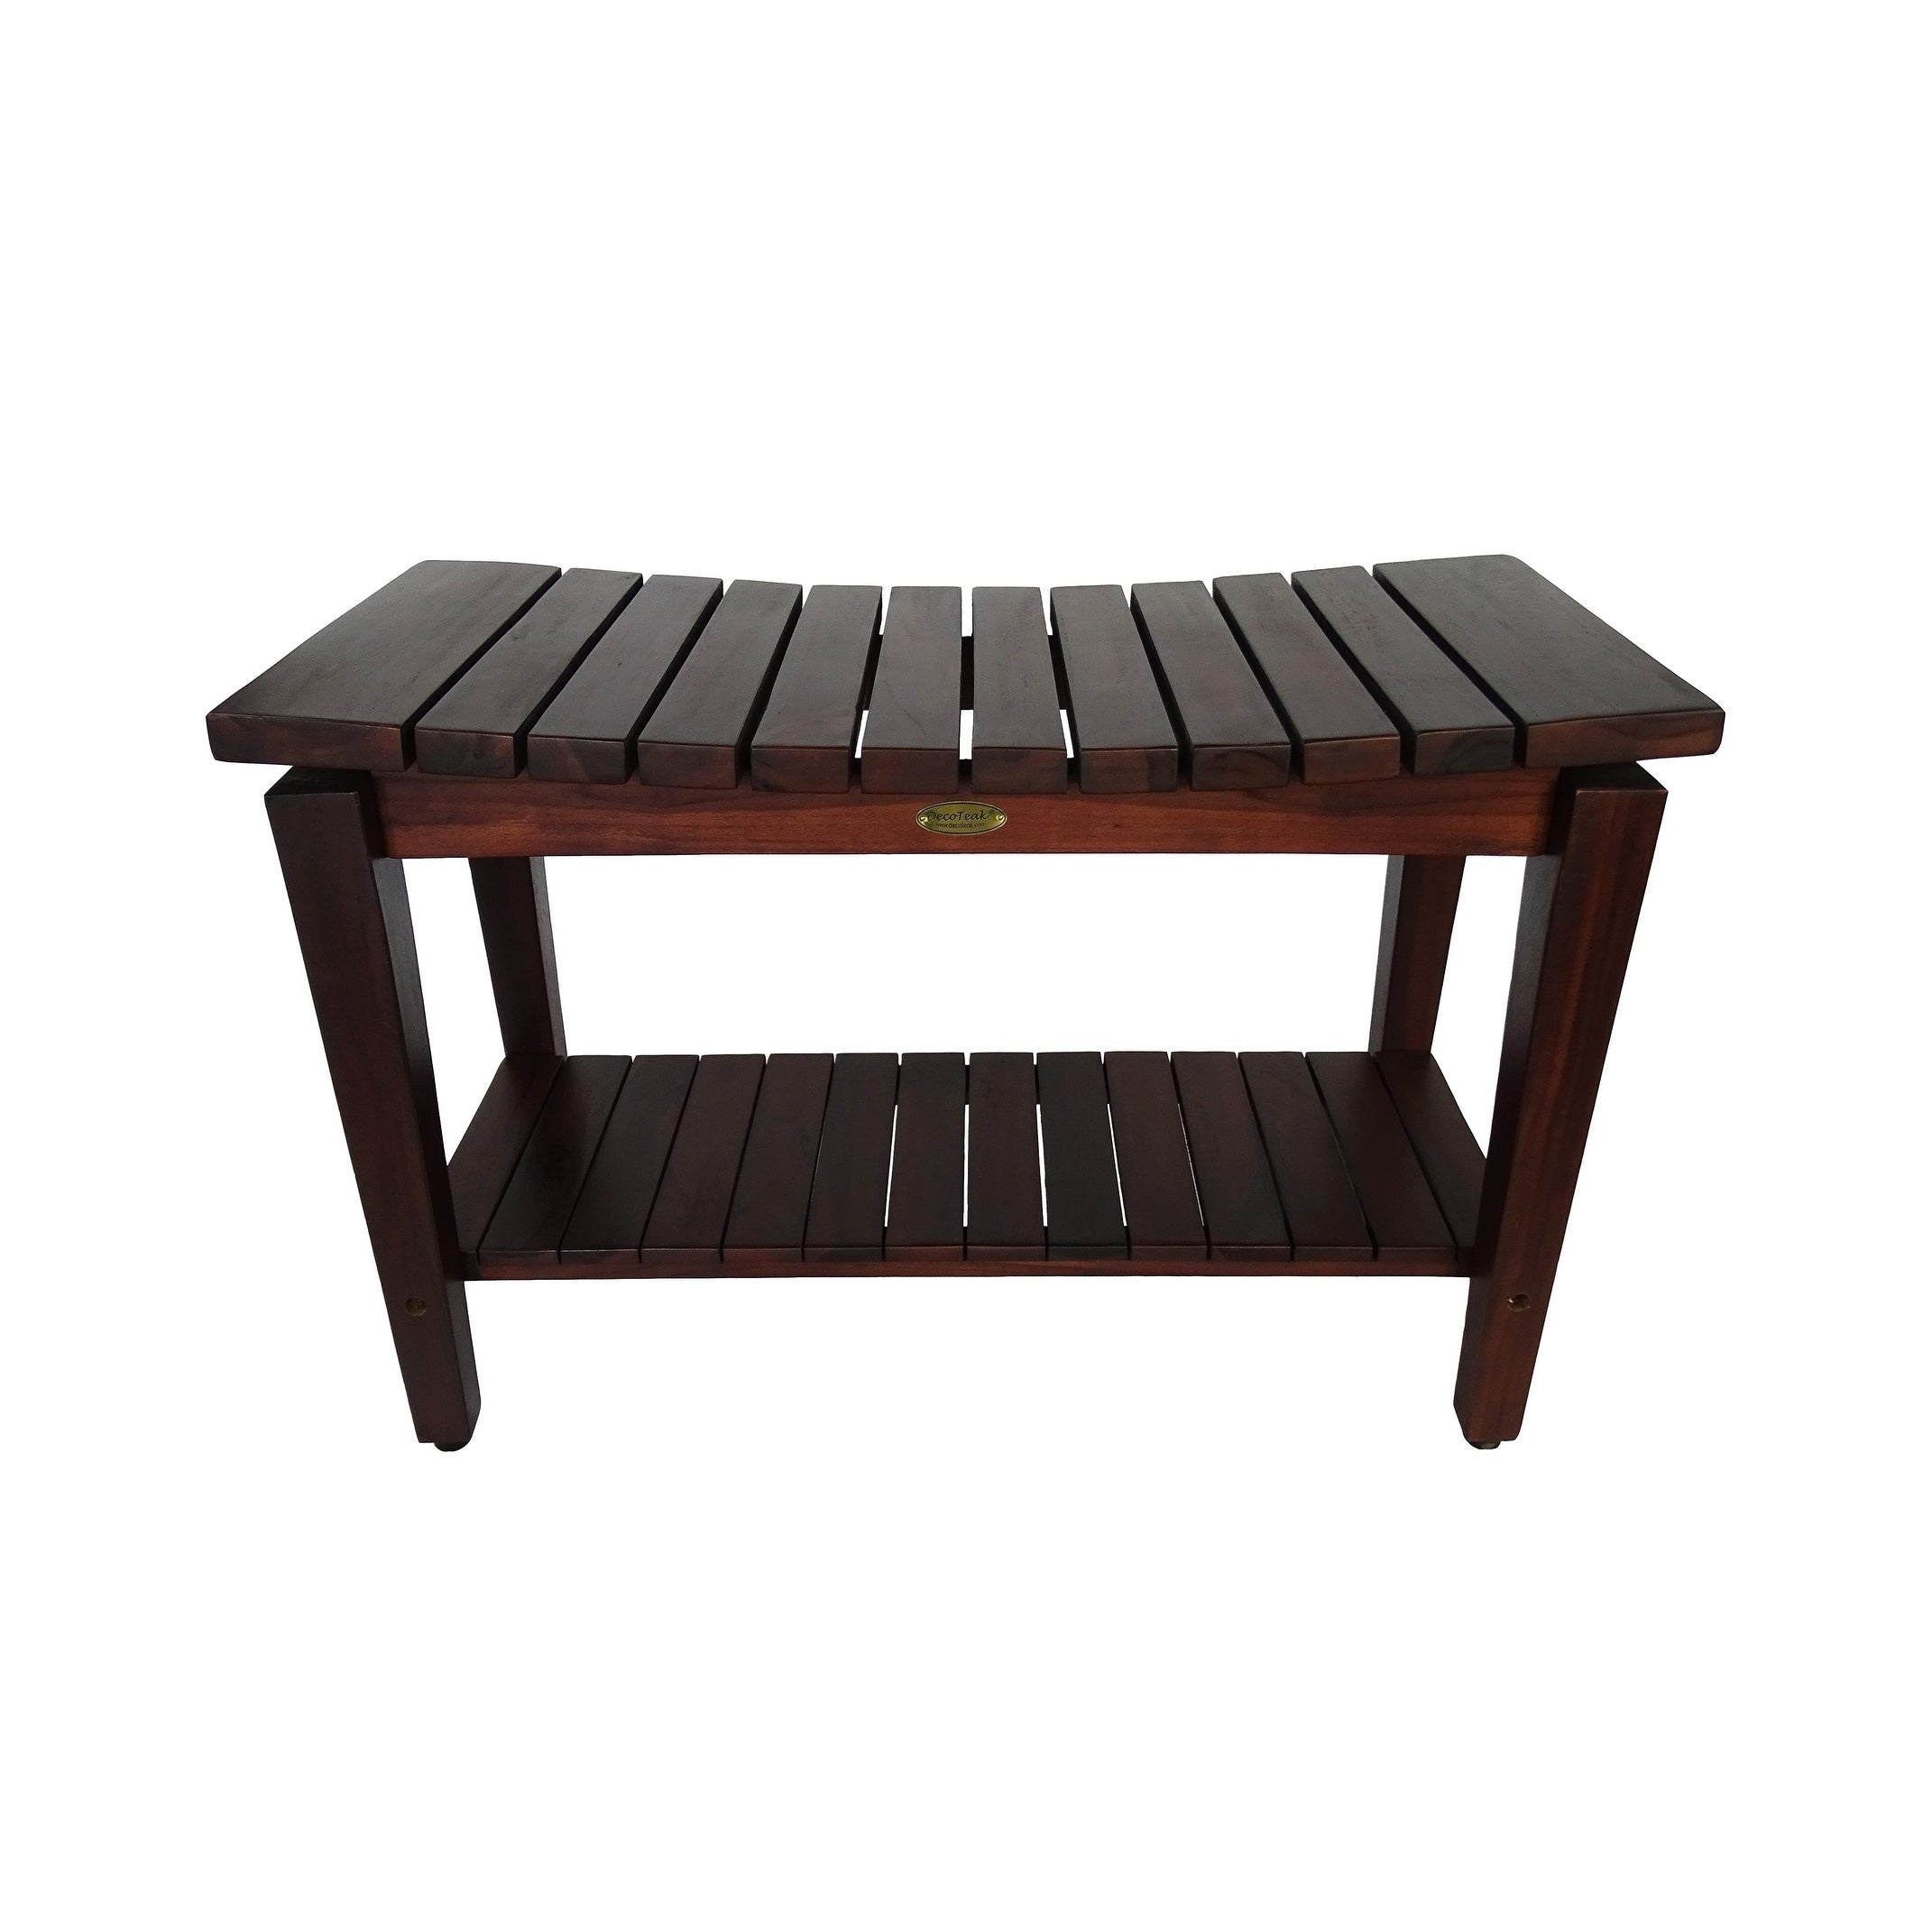 Shop Decoteak Sojourn 30 Solid Teak Curved Seat Shower Bench In Woodland Brown Finish Overstock 28301019